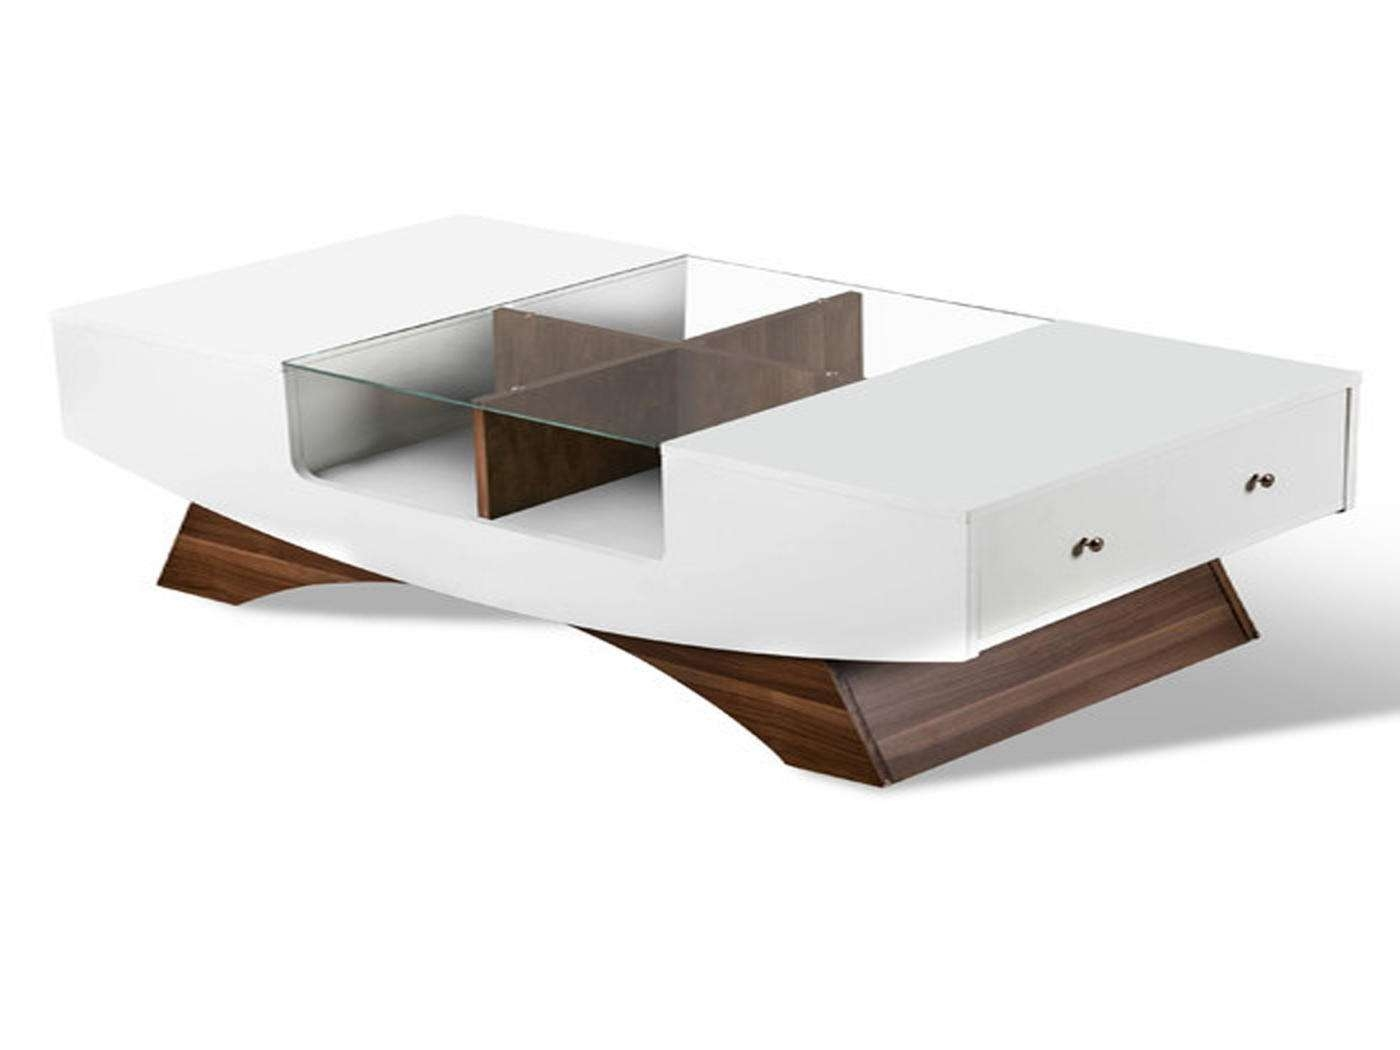 Most Current Stylish Coffee Tables Within Coffee Table : Magic Basket Video Funny Apartment Video Stylish (View 17 of 20)